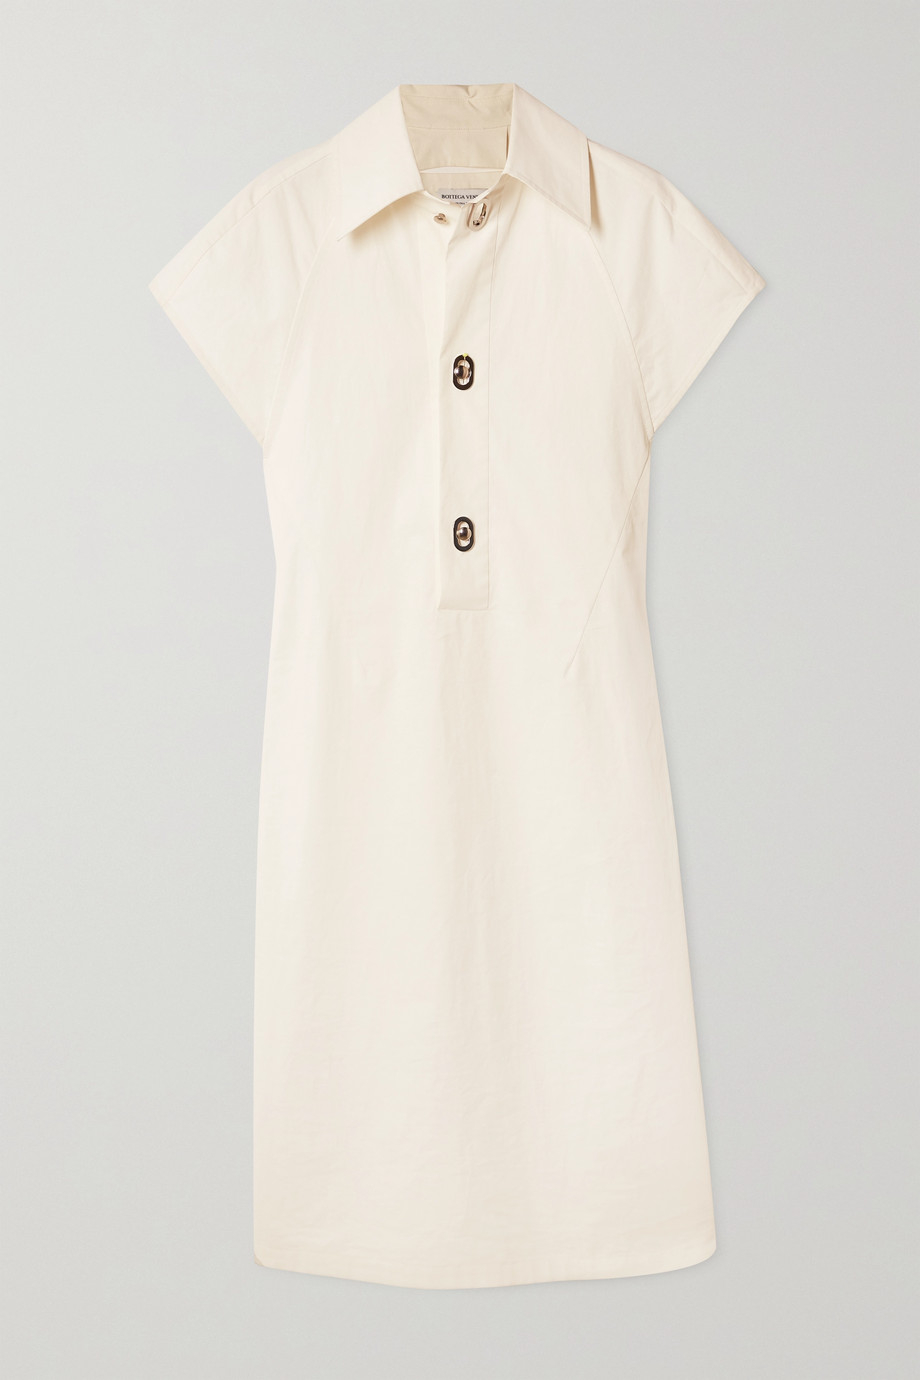 Bottega Veneta Coated cotton-poplin dress